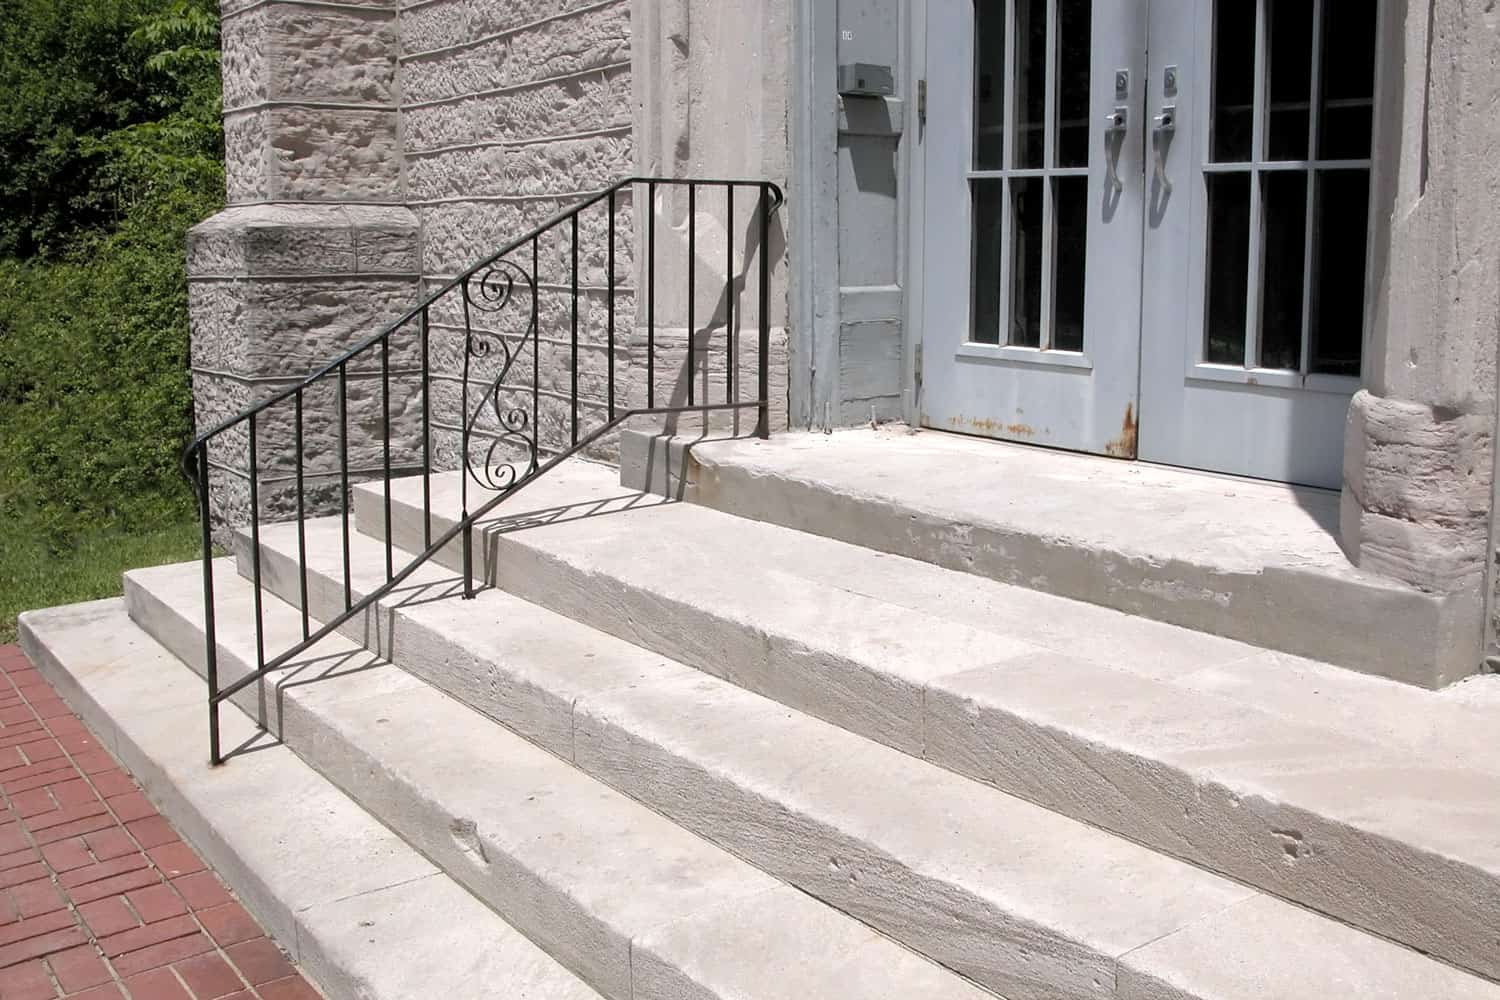 Limestone stairs and a metal railing leading to a light blue double door